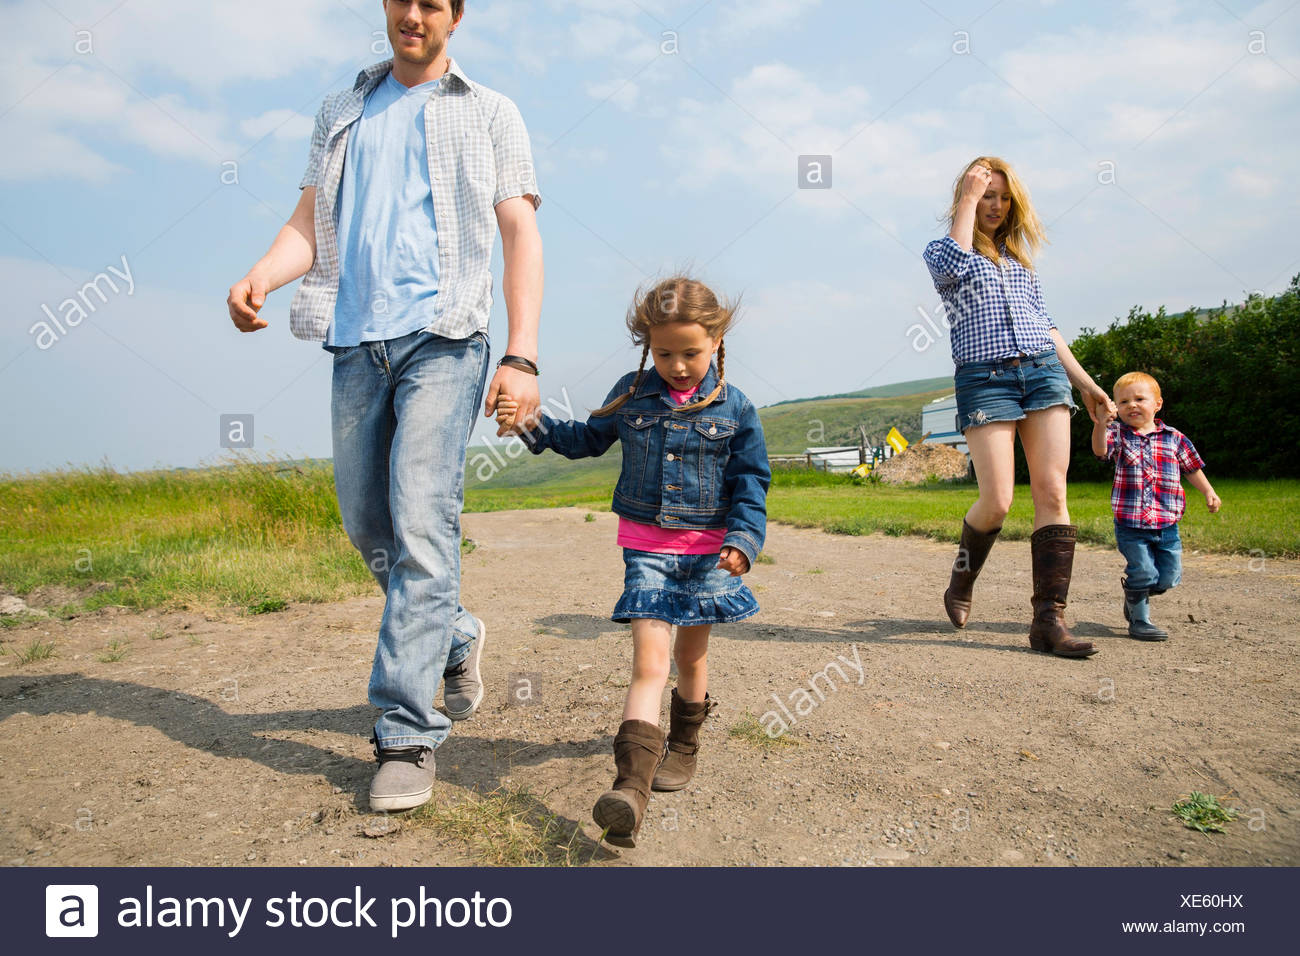 Family walking on rural dirt road - Stock Image